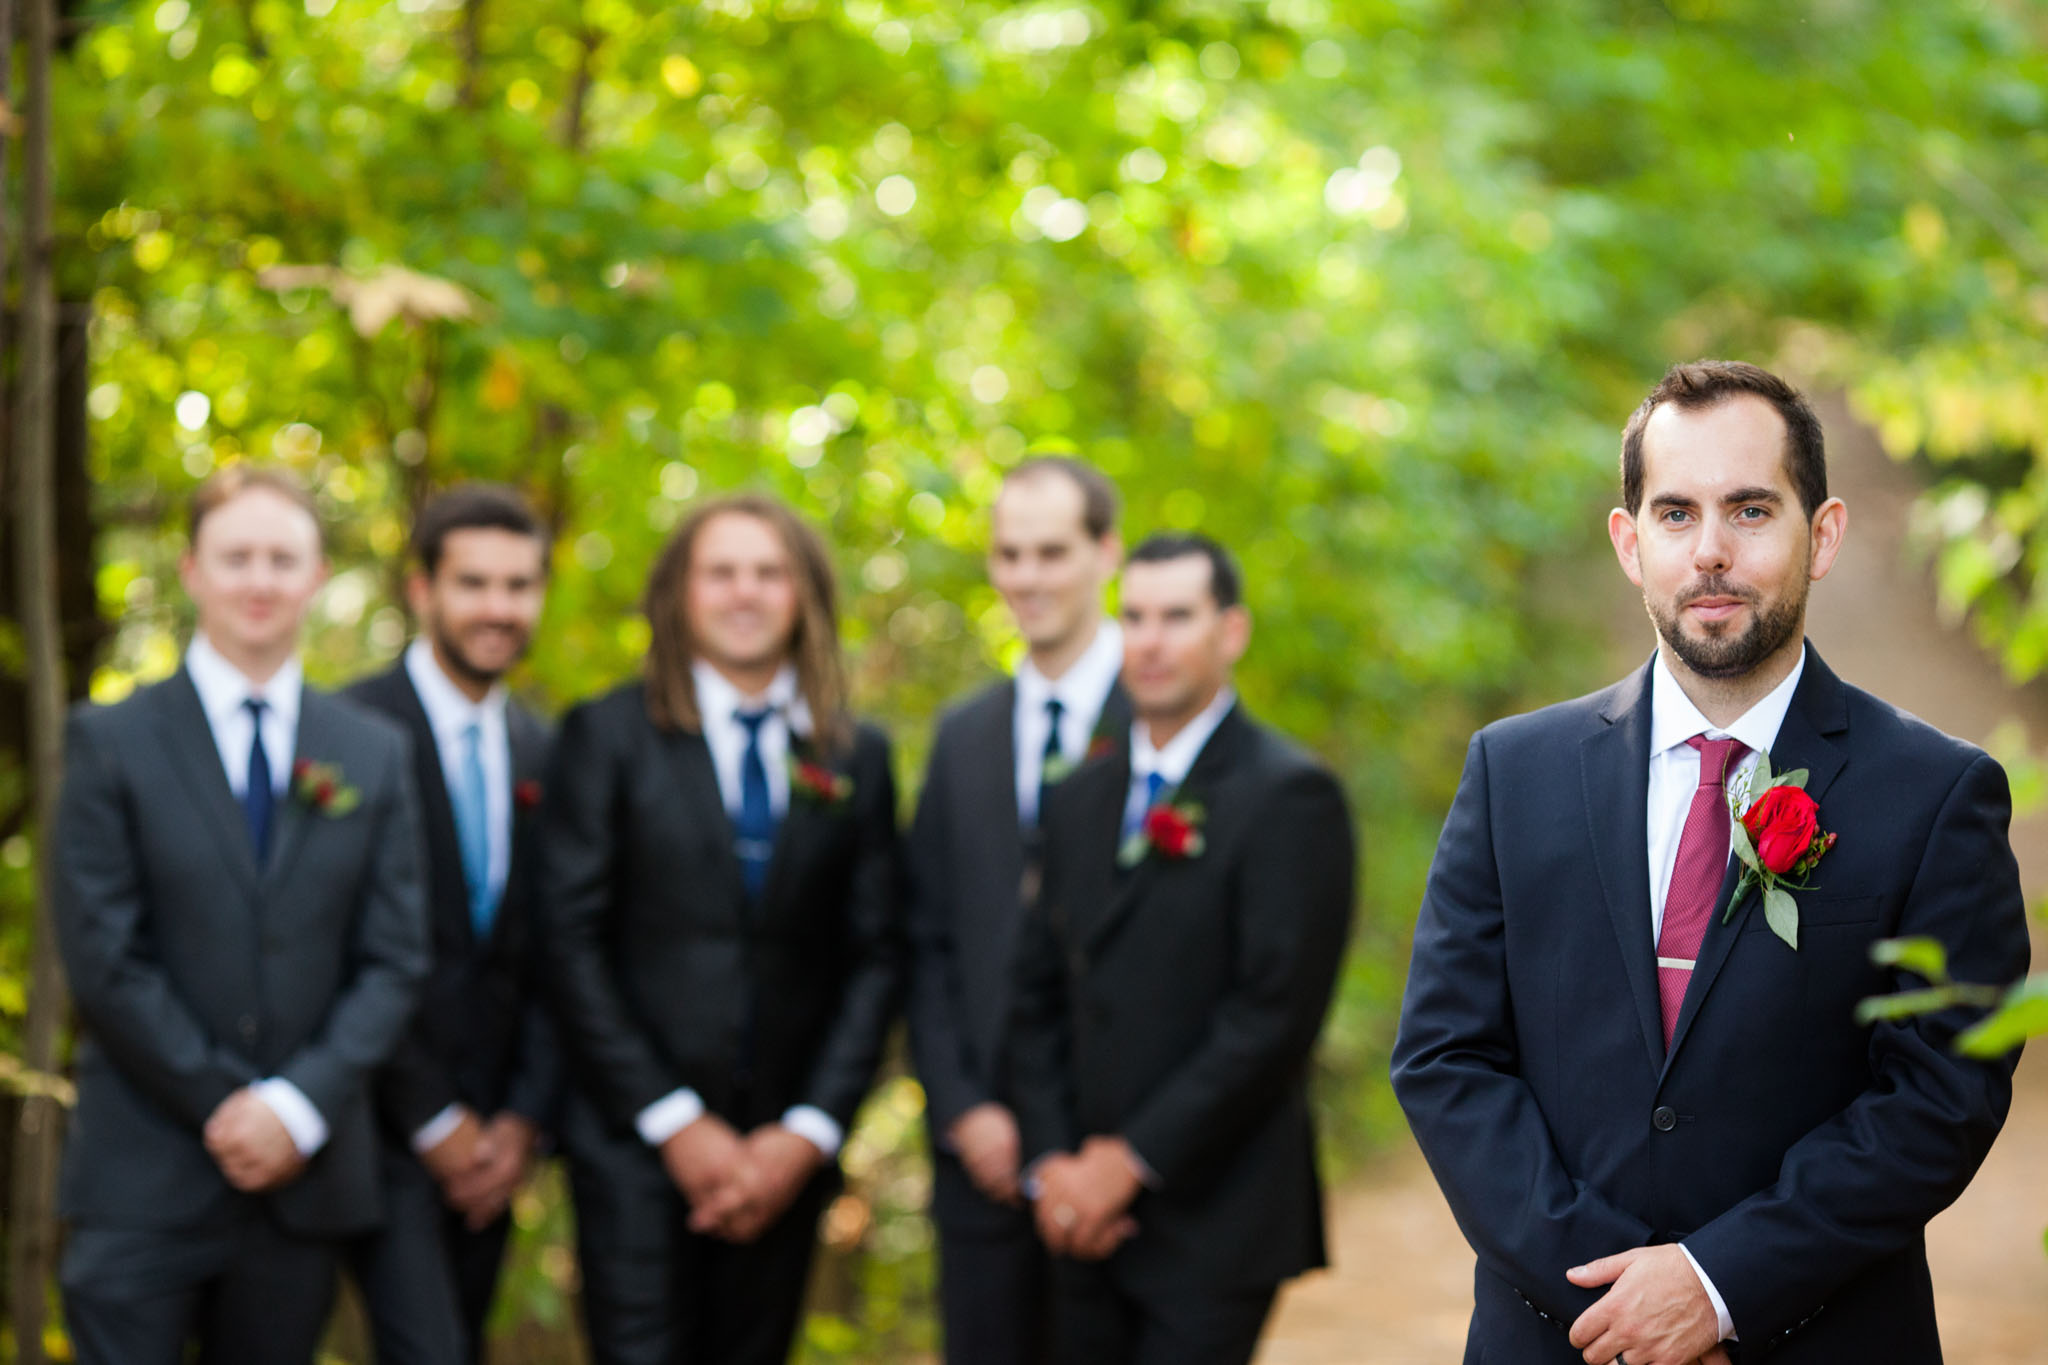 groom with red tie and red boutonniere with groomsmen in back ground in natural wooded area - wedding photography.jpg